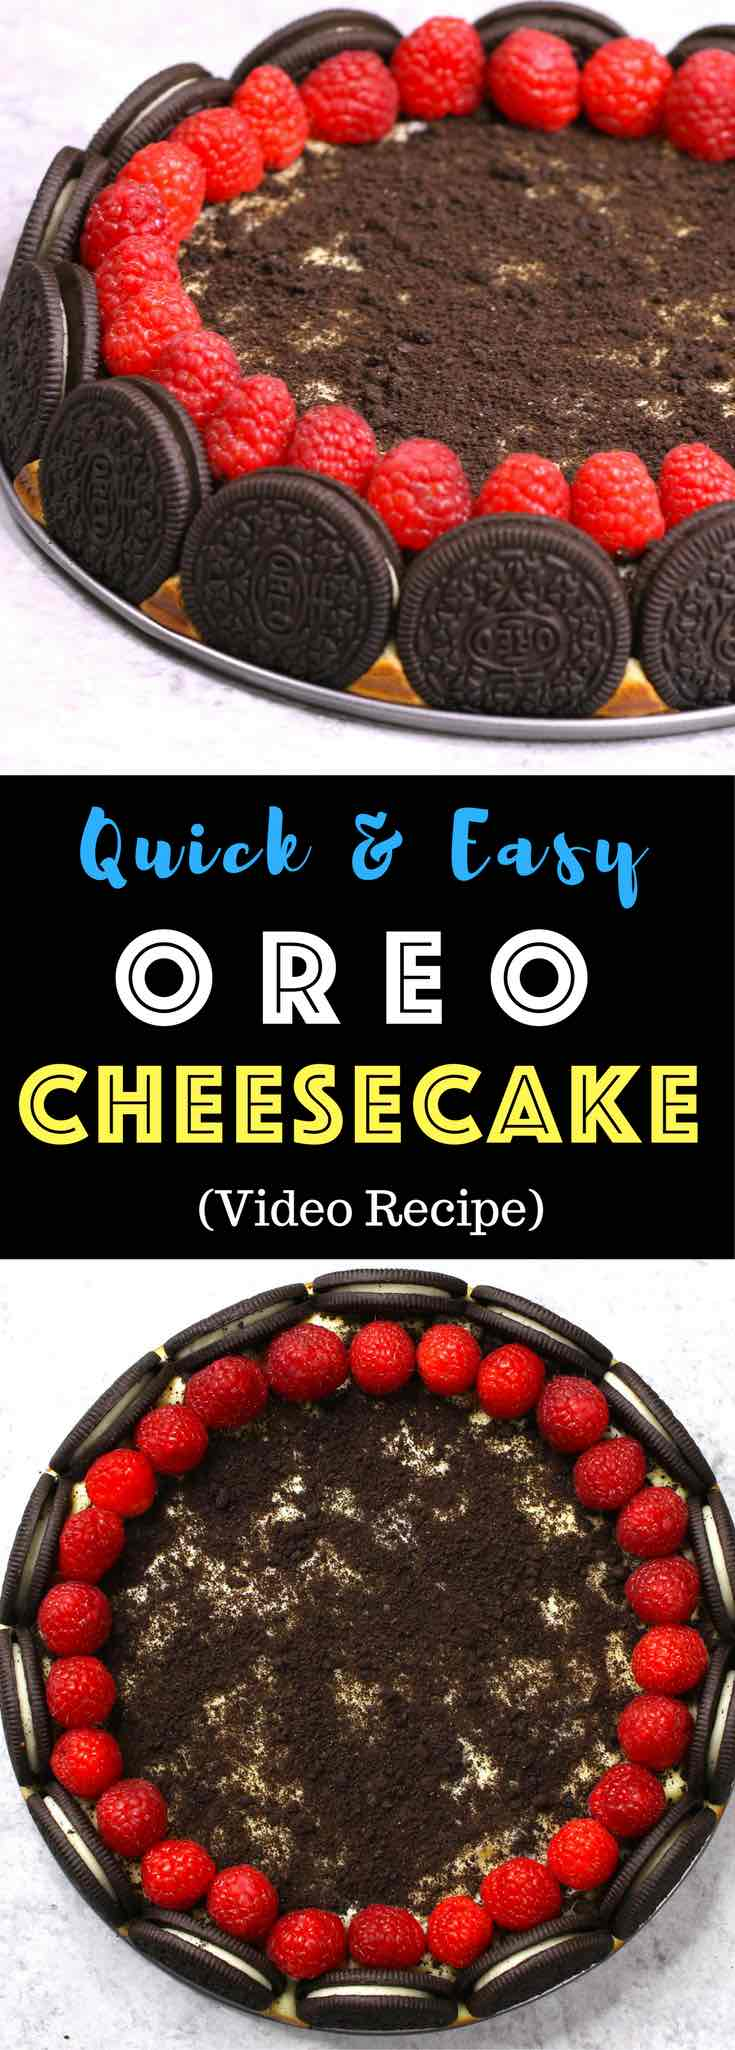 The Best Oreo Cheesecake Recipe with Video TipBuzz